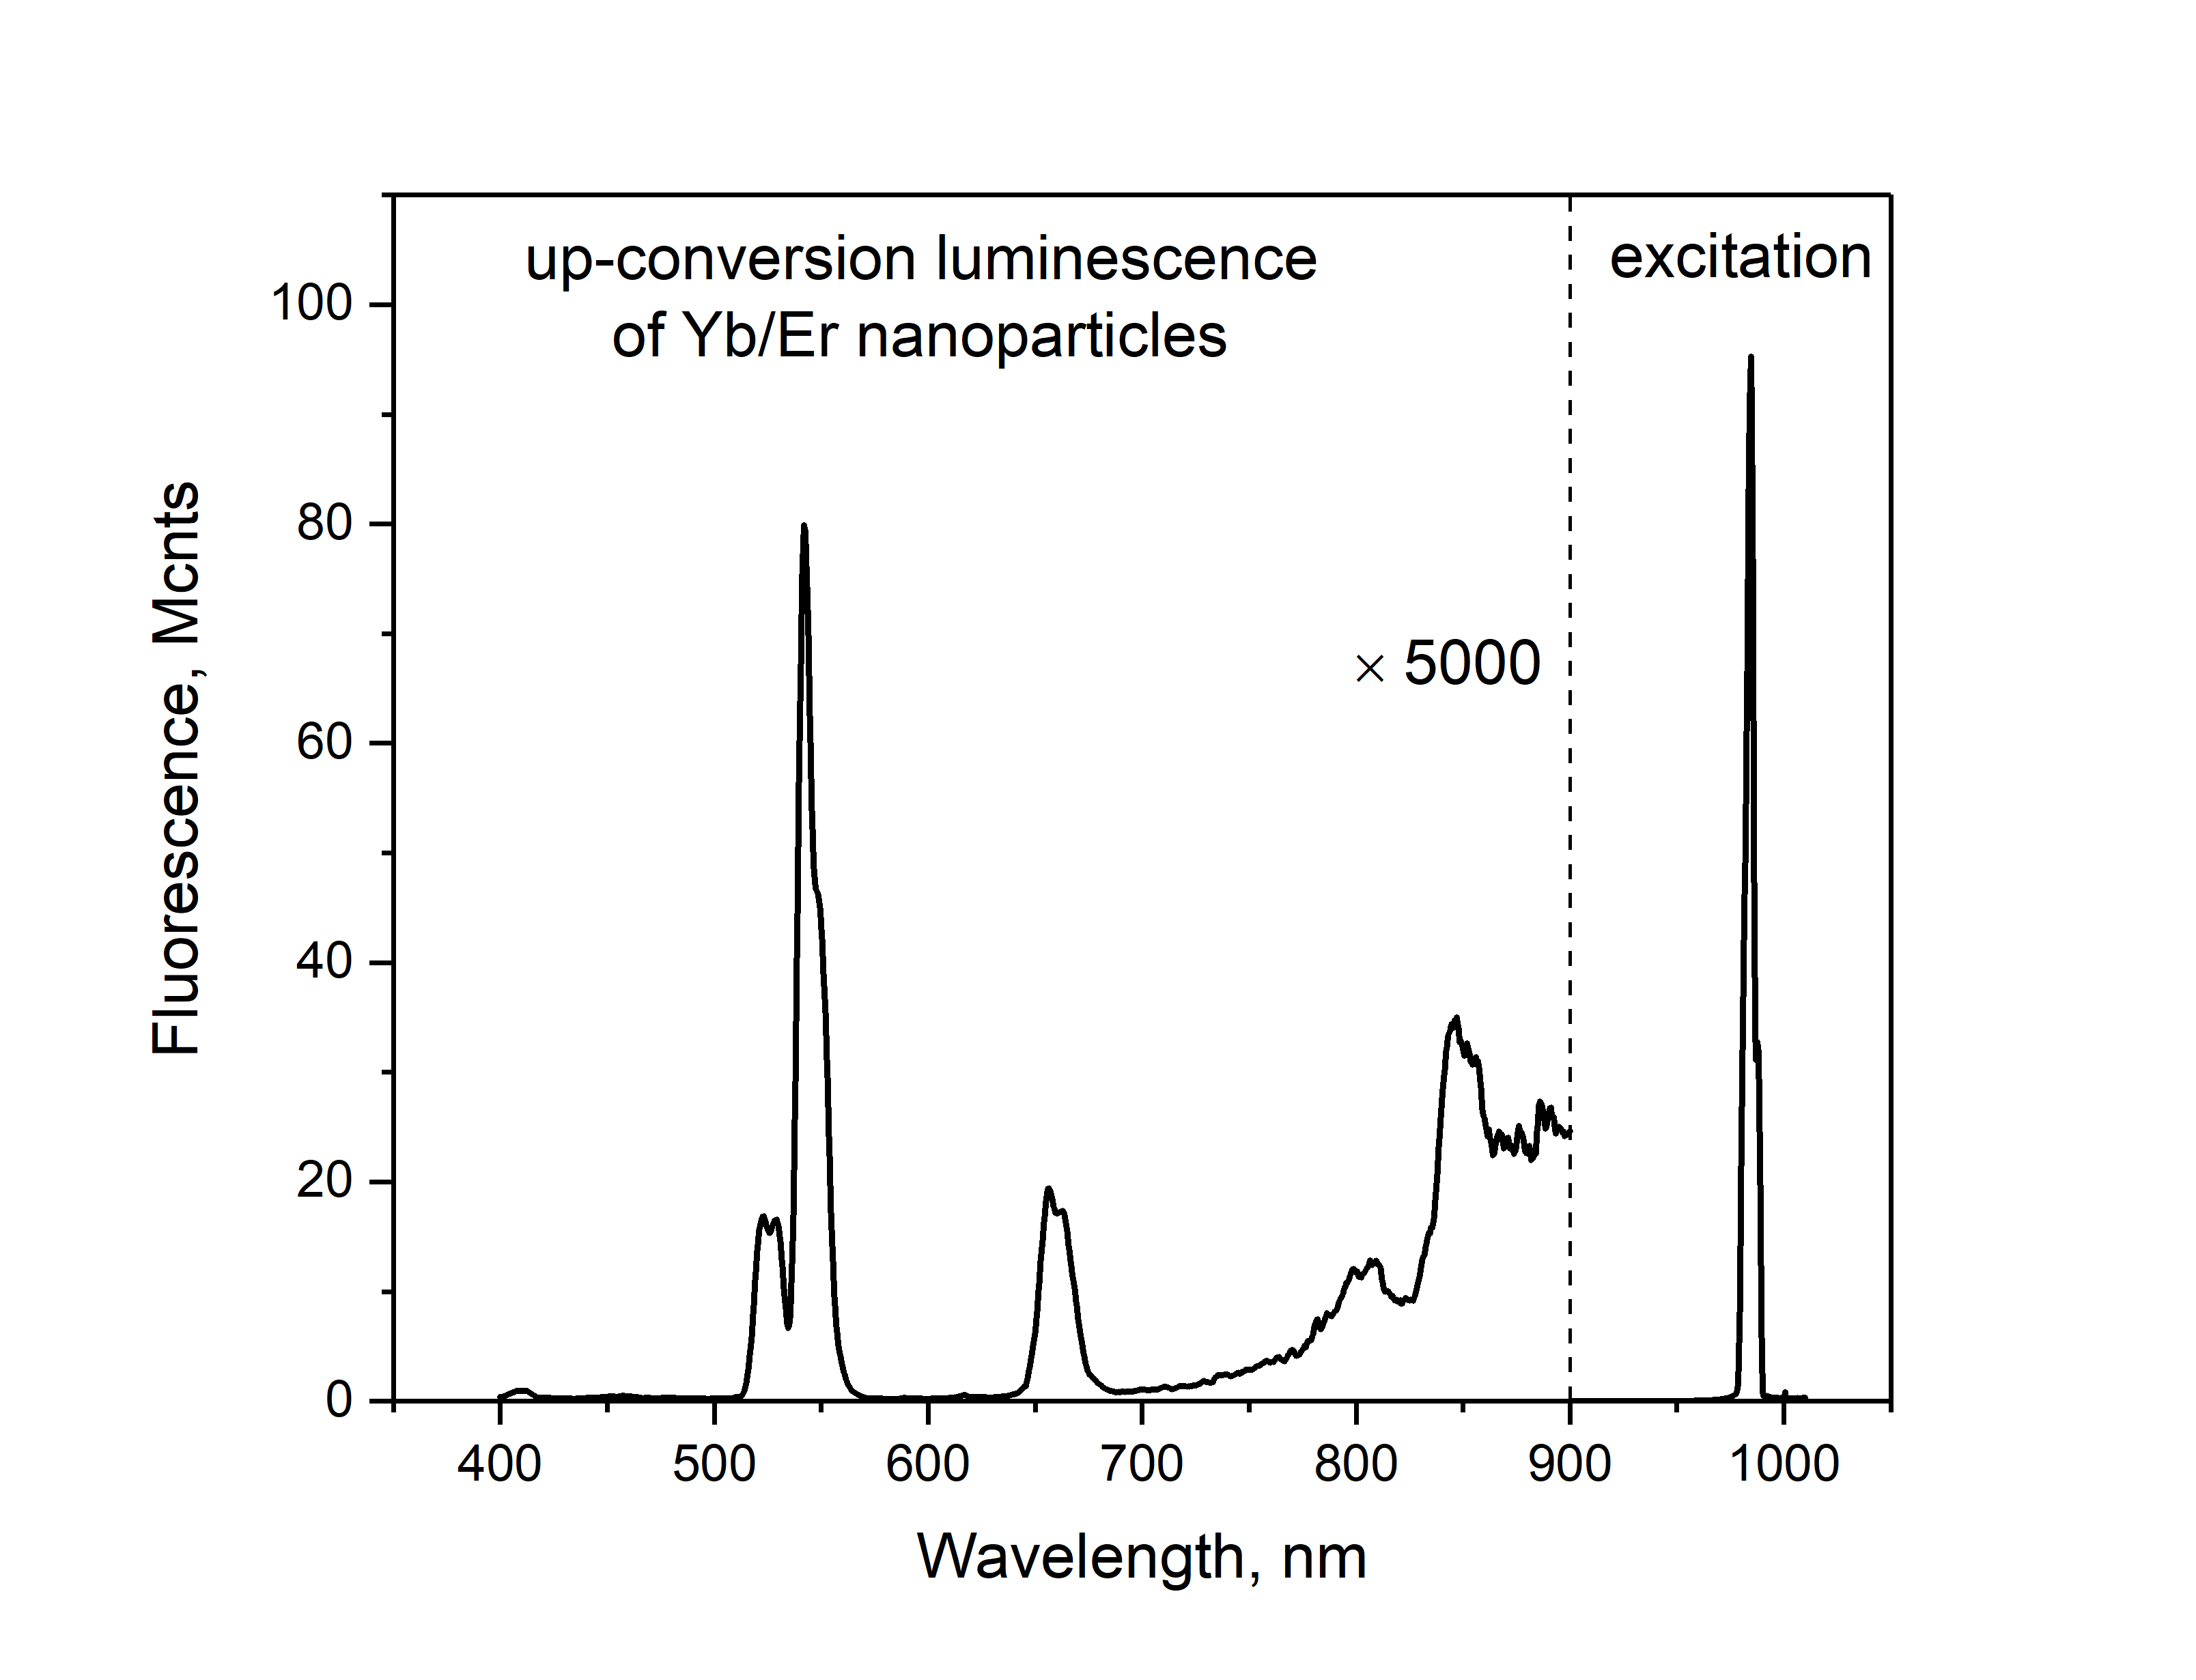 Er yb up-conversion nanoparticles